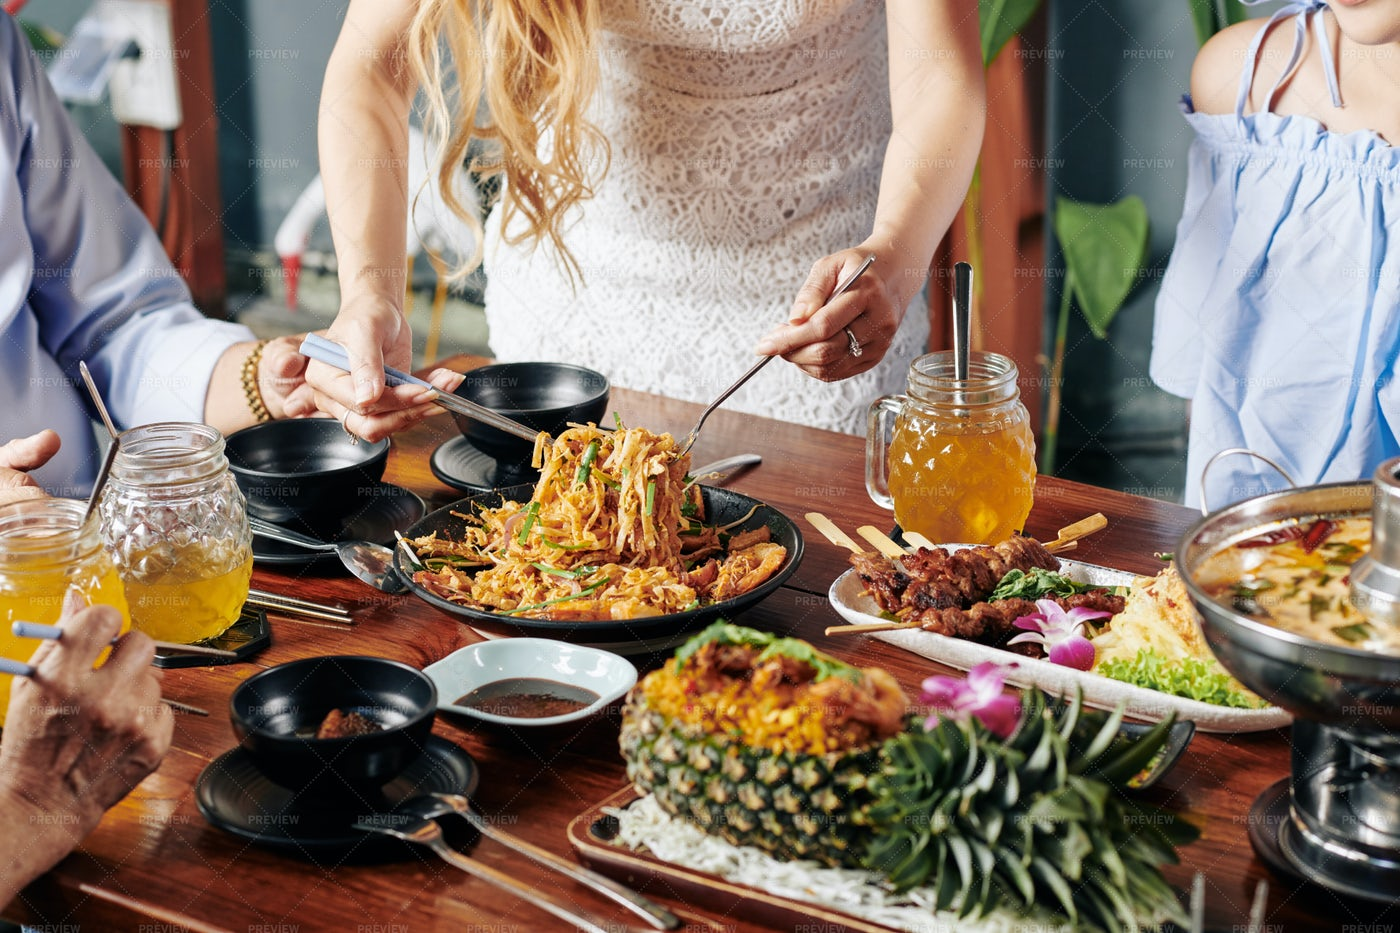 Housewife Serving Food At Dinner: Stock Photos